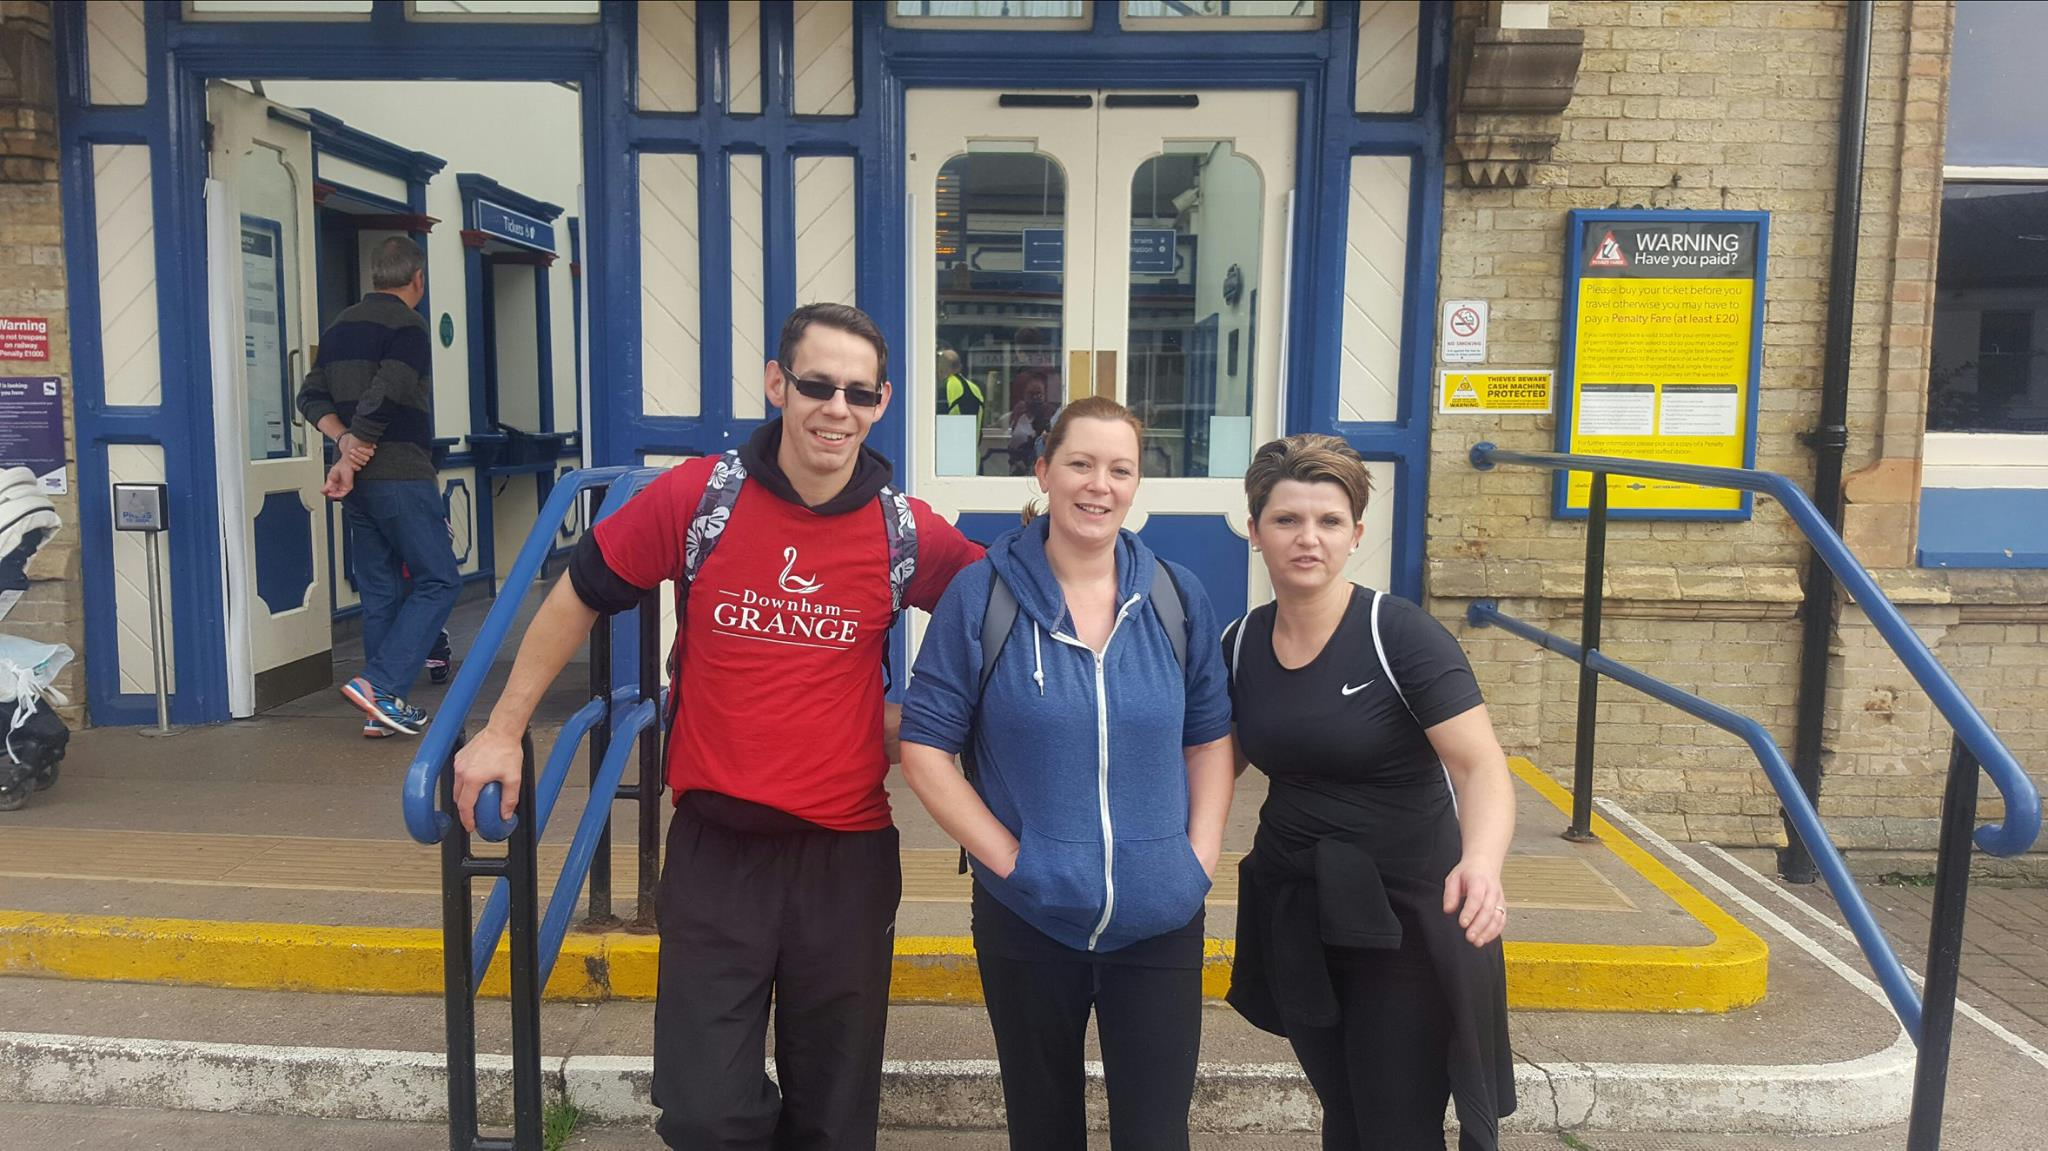 They made it – after four hours 30 minutes and 28,205 steps!